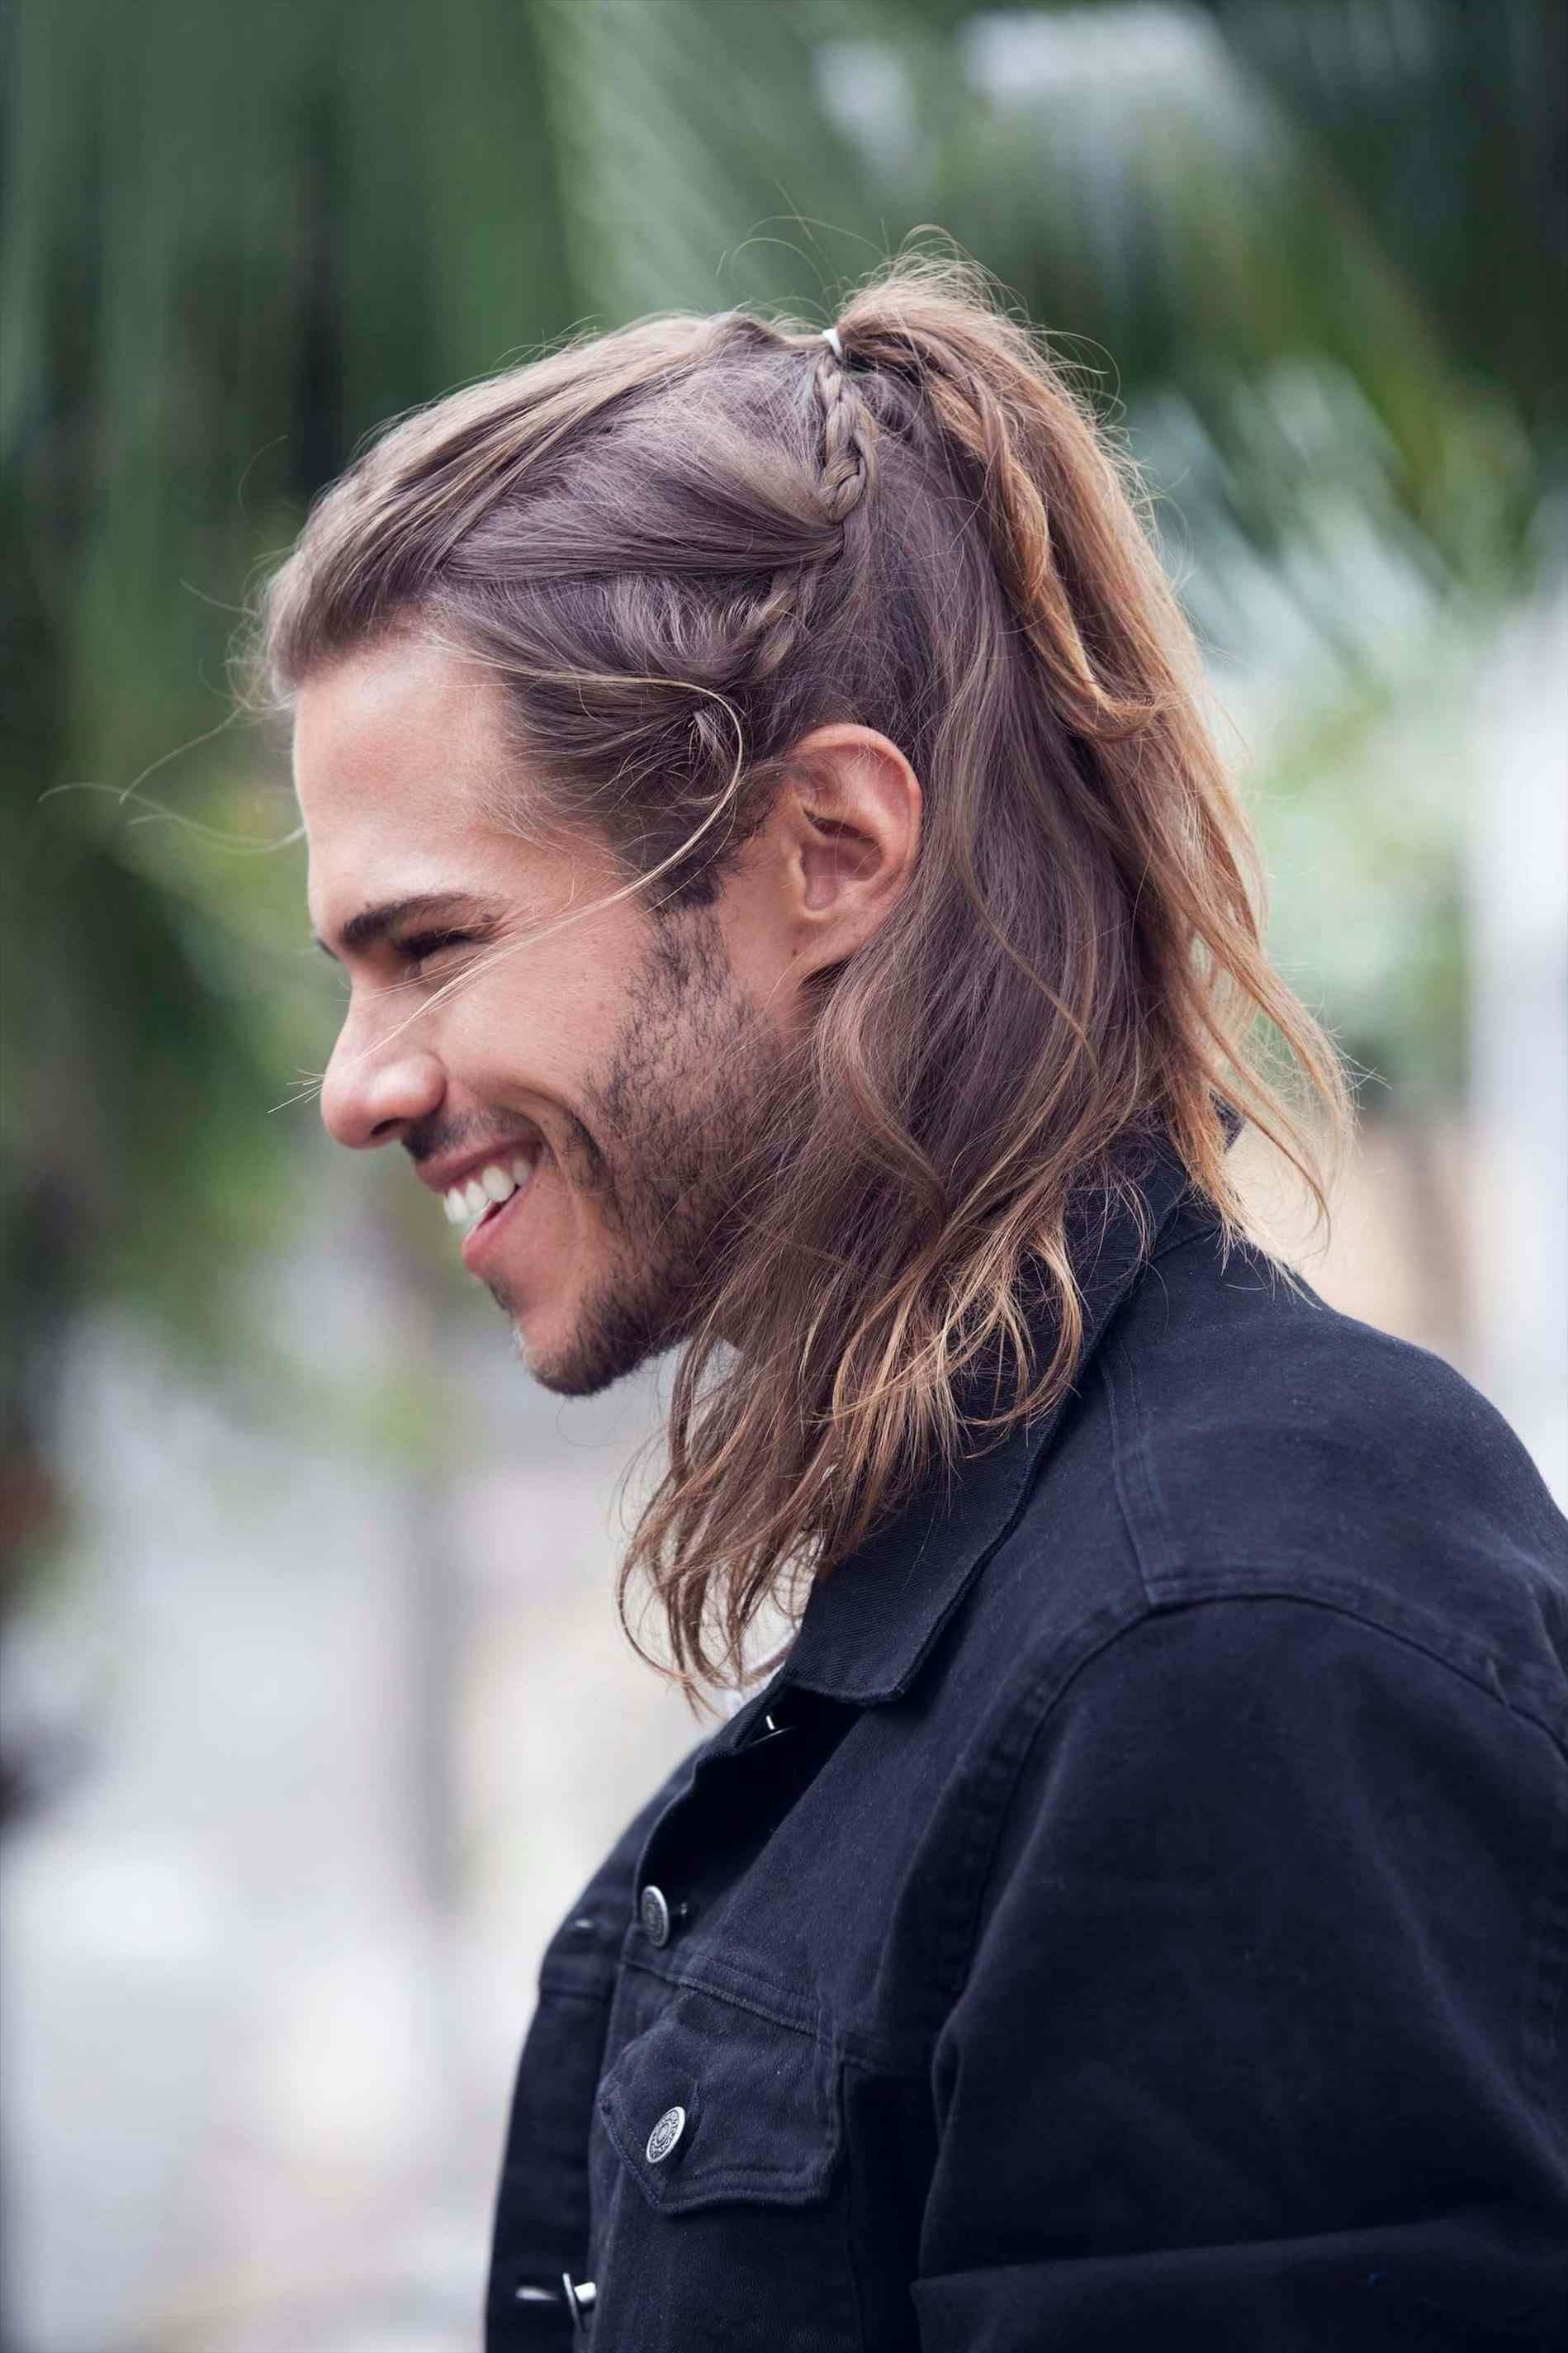 White Men With Braid Hairstyles Trending Fashionterest In 2020 Long Hair Styles Thick Hair Styles Mens Ponytail Hairstyles